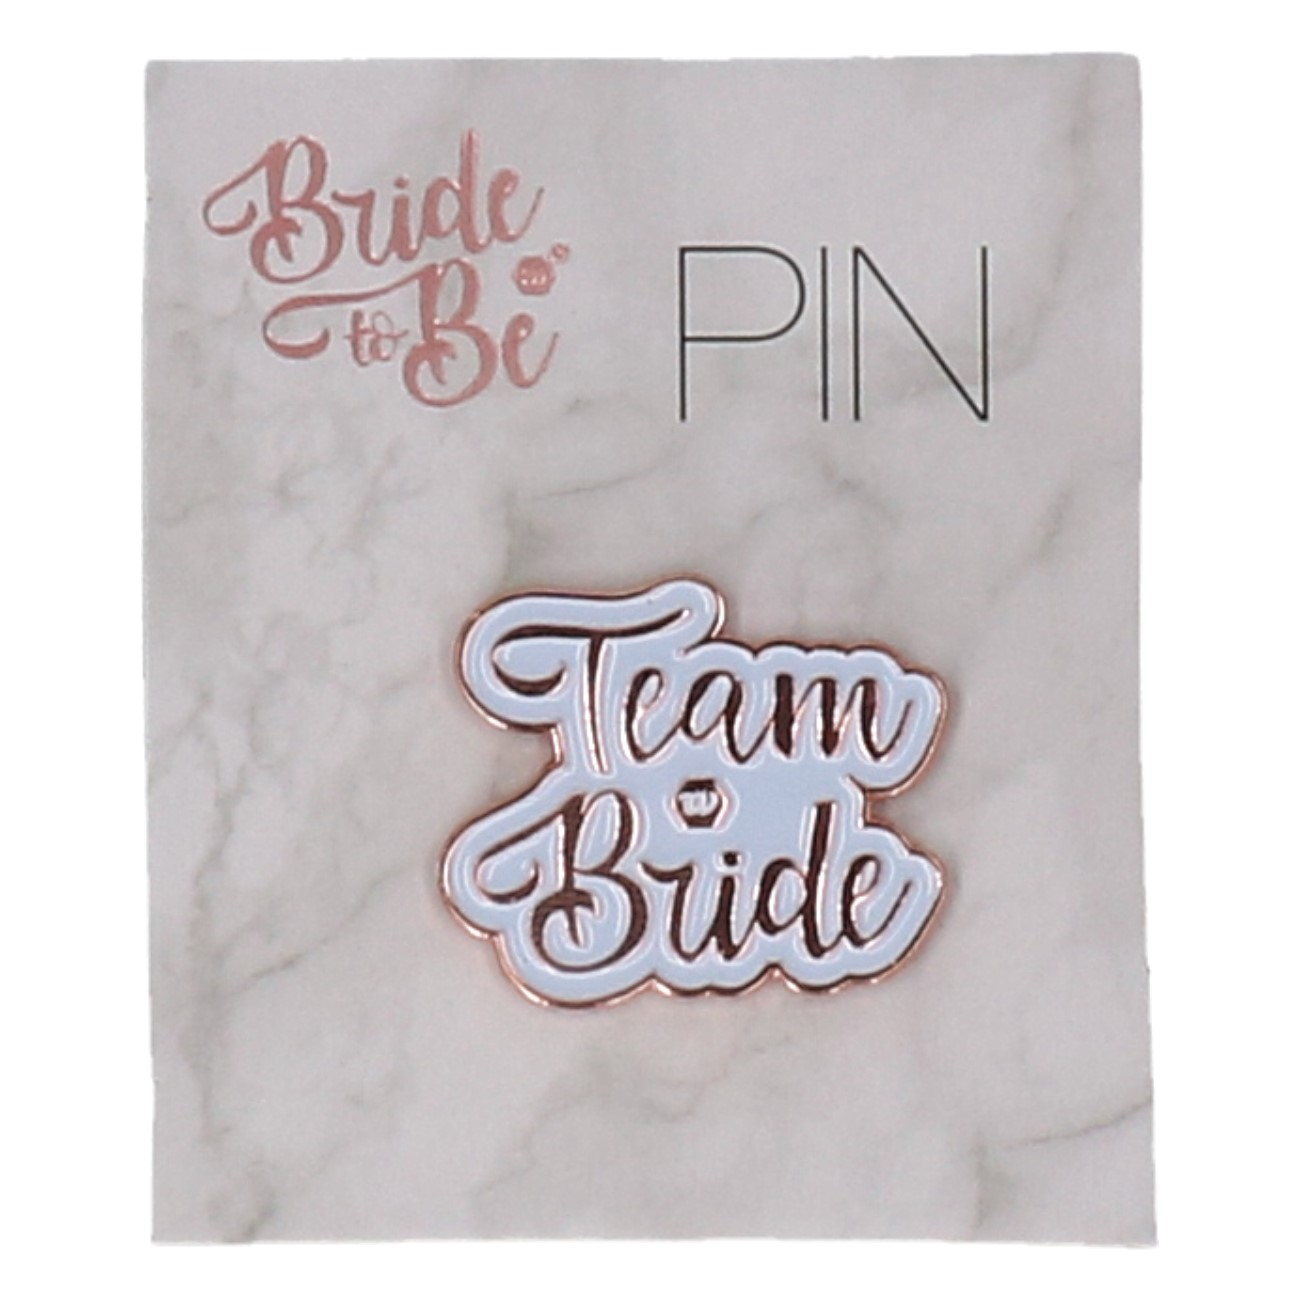 Pin Team bride